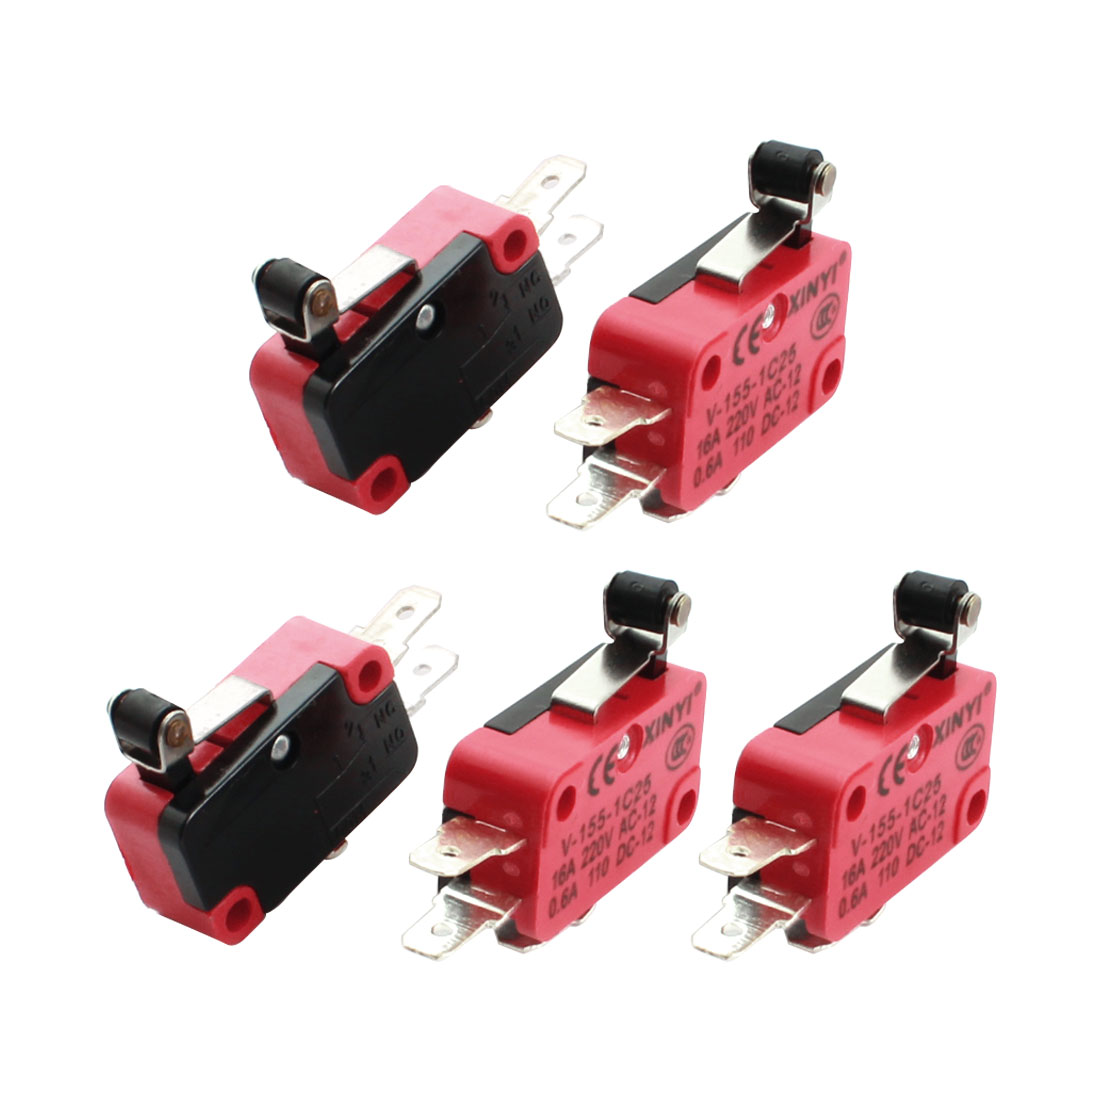 5 Pcs V-155-1C25 Micro Limit Switch Short Hinge Roller Lever Arm Momentary SPDT Snap Action